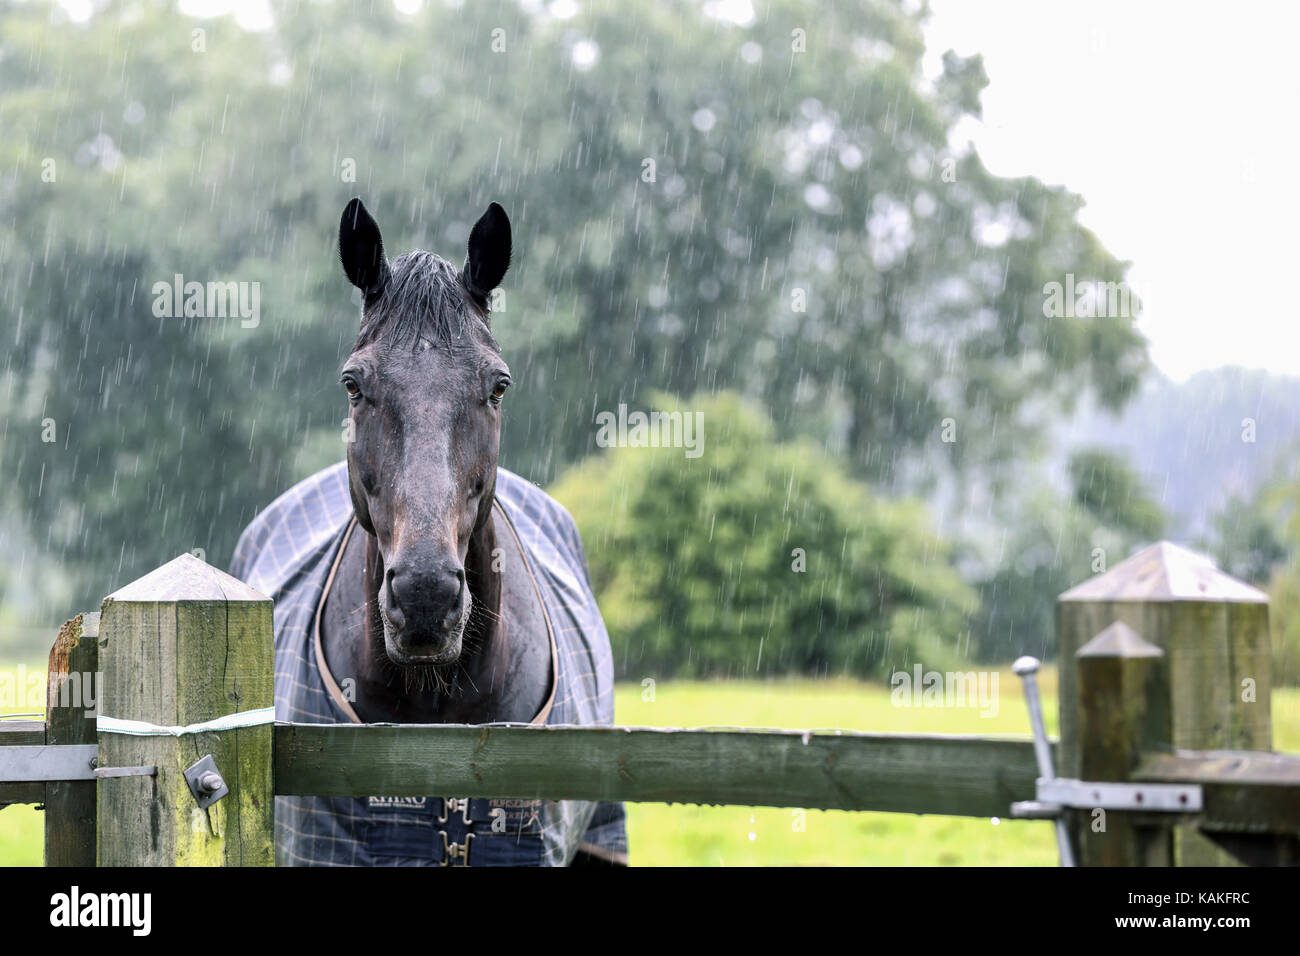 a-rain-soaked-thoroughbred-horse-looks-o